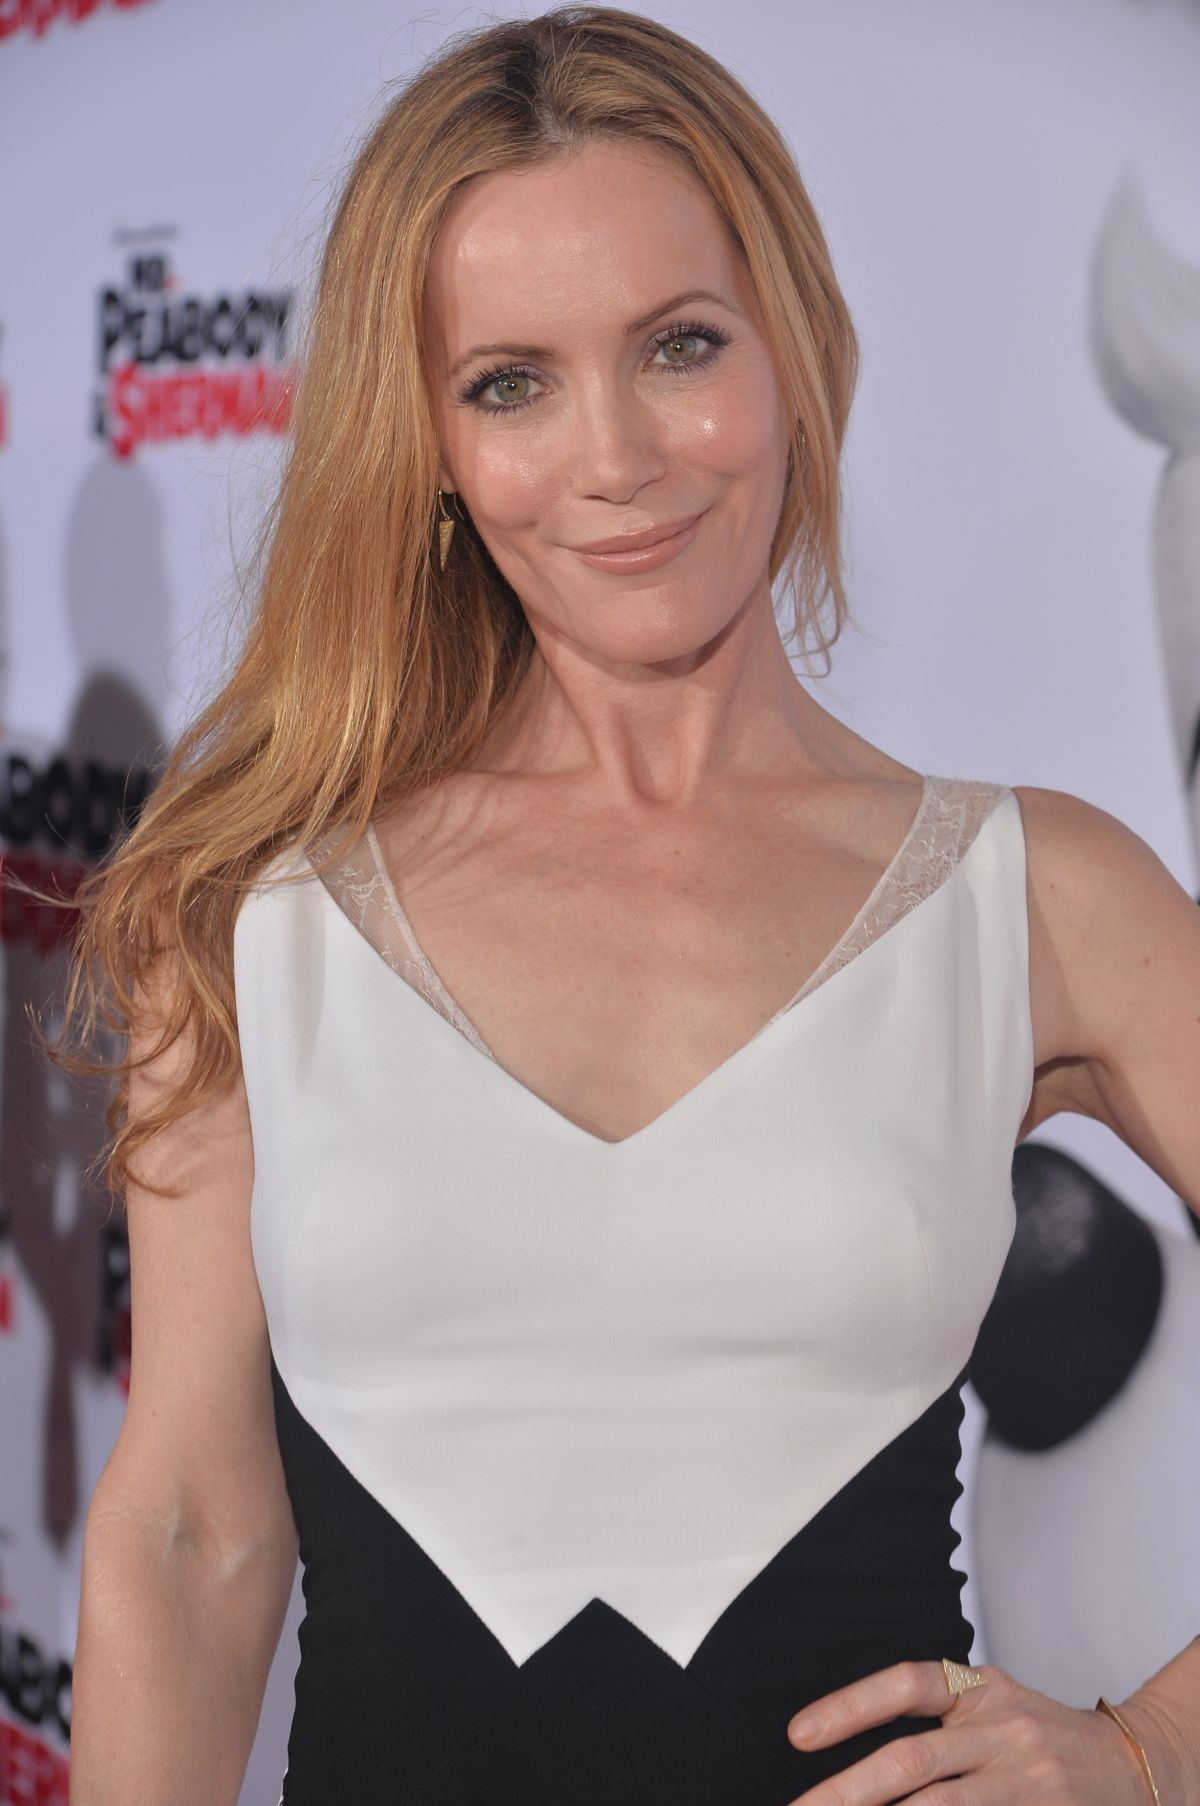 leslie mann height weight measurementsleslie mann young, leslie mann movies, leslie mann knocked up, leslie mann apatow, leslie mann bellazon, leslie mann kiss, leslie mann vk, leslie mann modern family, leslie mann fansite, leslie mann robert de niro, leslie mann natal chart, leslie mann height weight measurements, leslie mann family, leslie mann фото, leslie mann inst, leslie mann whosdatedwho, leslie mann husband, leslie mann instagram, leslie mann wiki, leslie mann composer